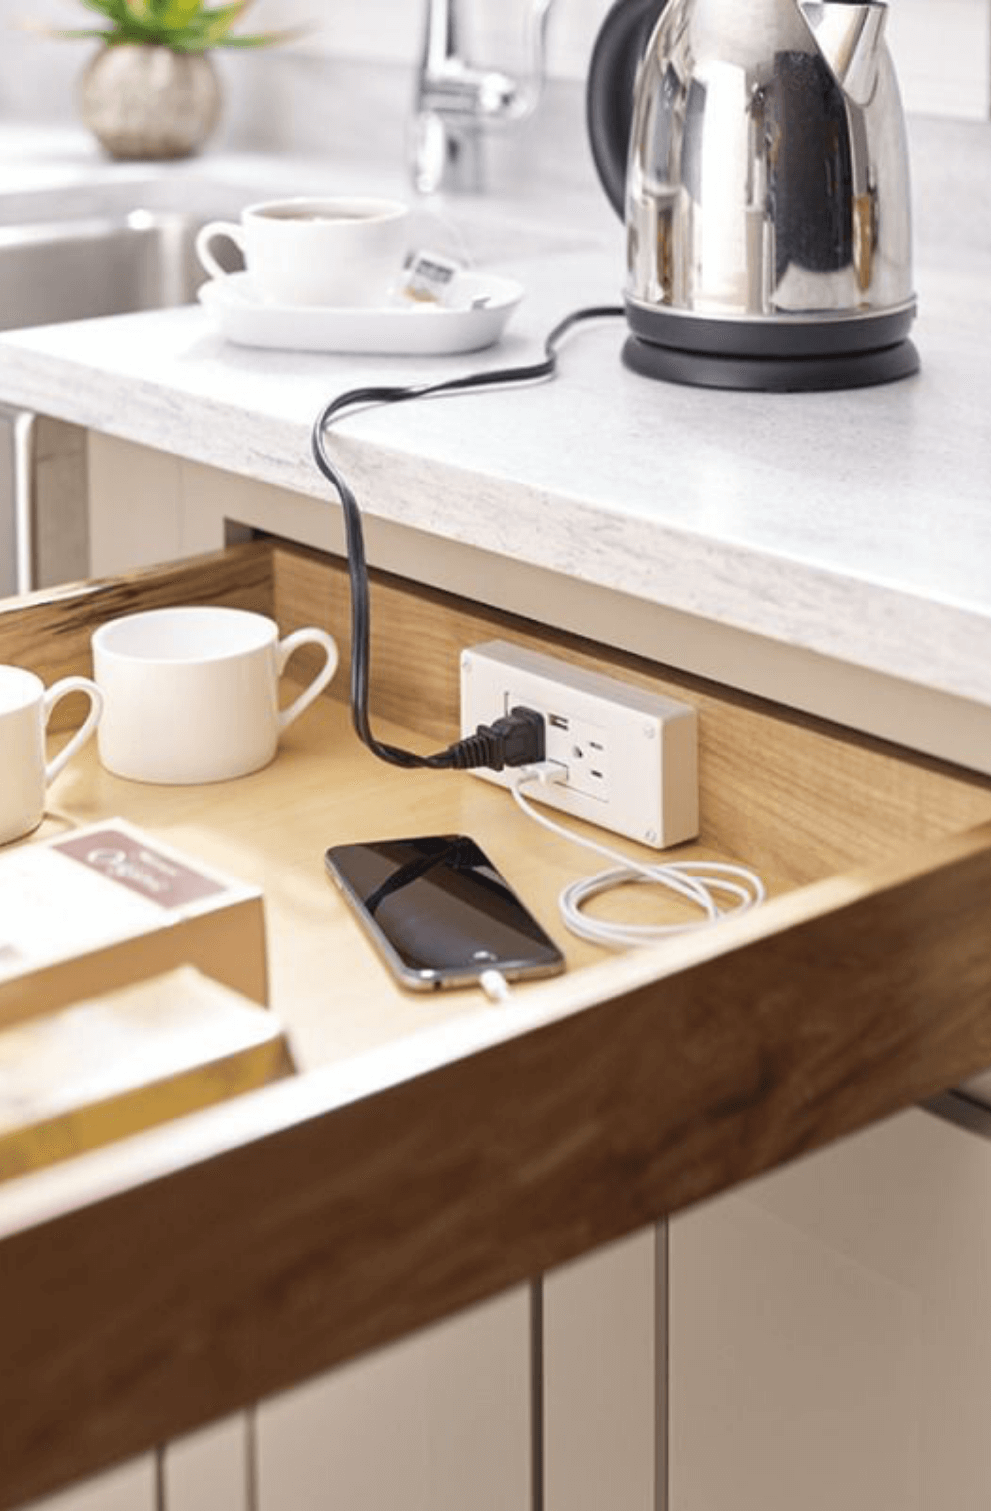 Smart kitchen with power outlets and USB ports built right into the cabinet.